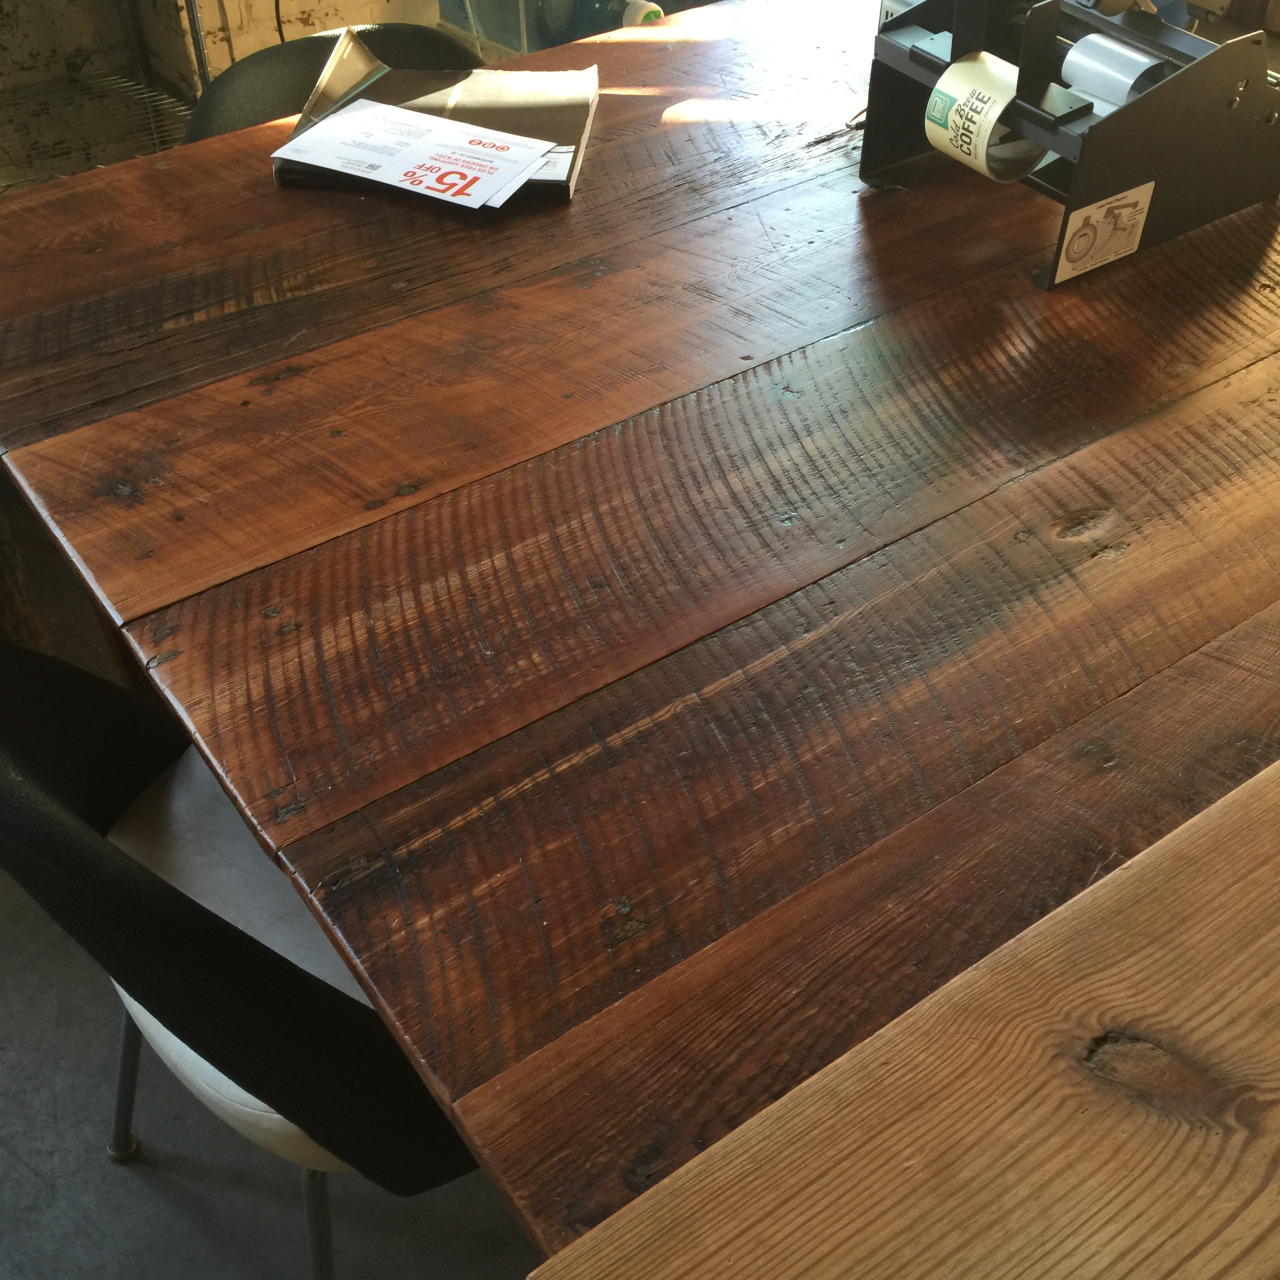 To accent their attention to the journey of their beans, we provided this café table, made of reclaimed heart pine boards we acquired through an extensive deconstruction of the One West Victory building, which used to be an old ice factory. The saw edge markings and old distress is still visible.